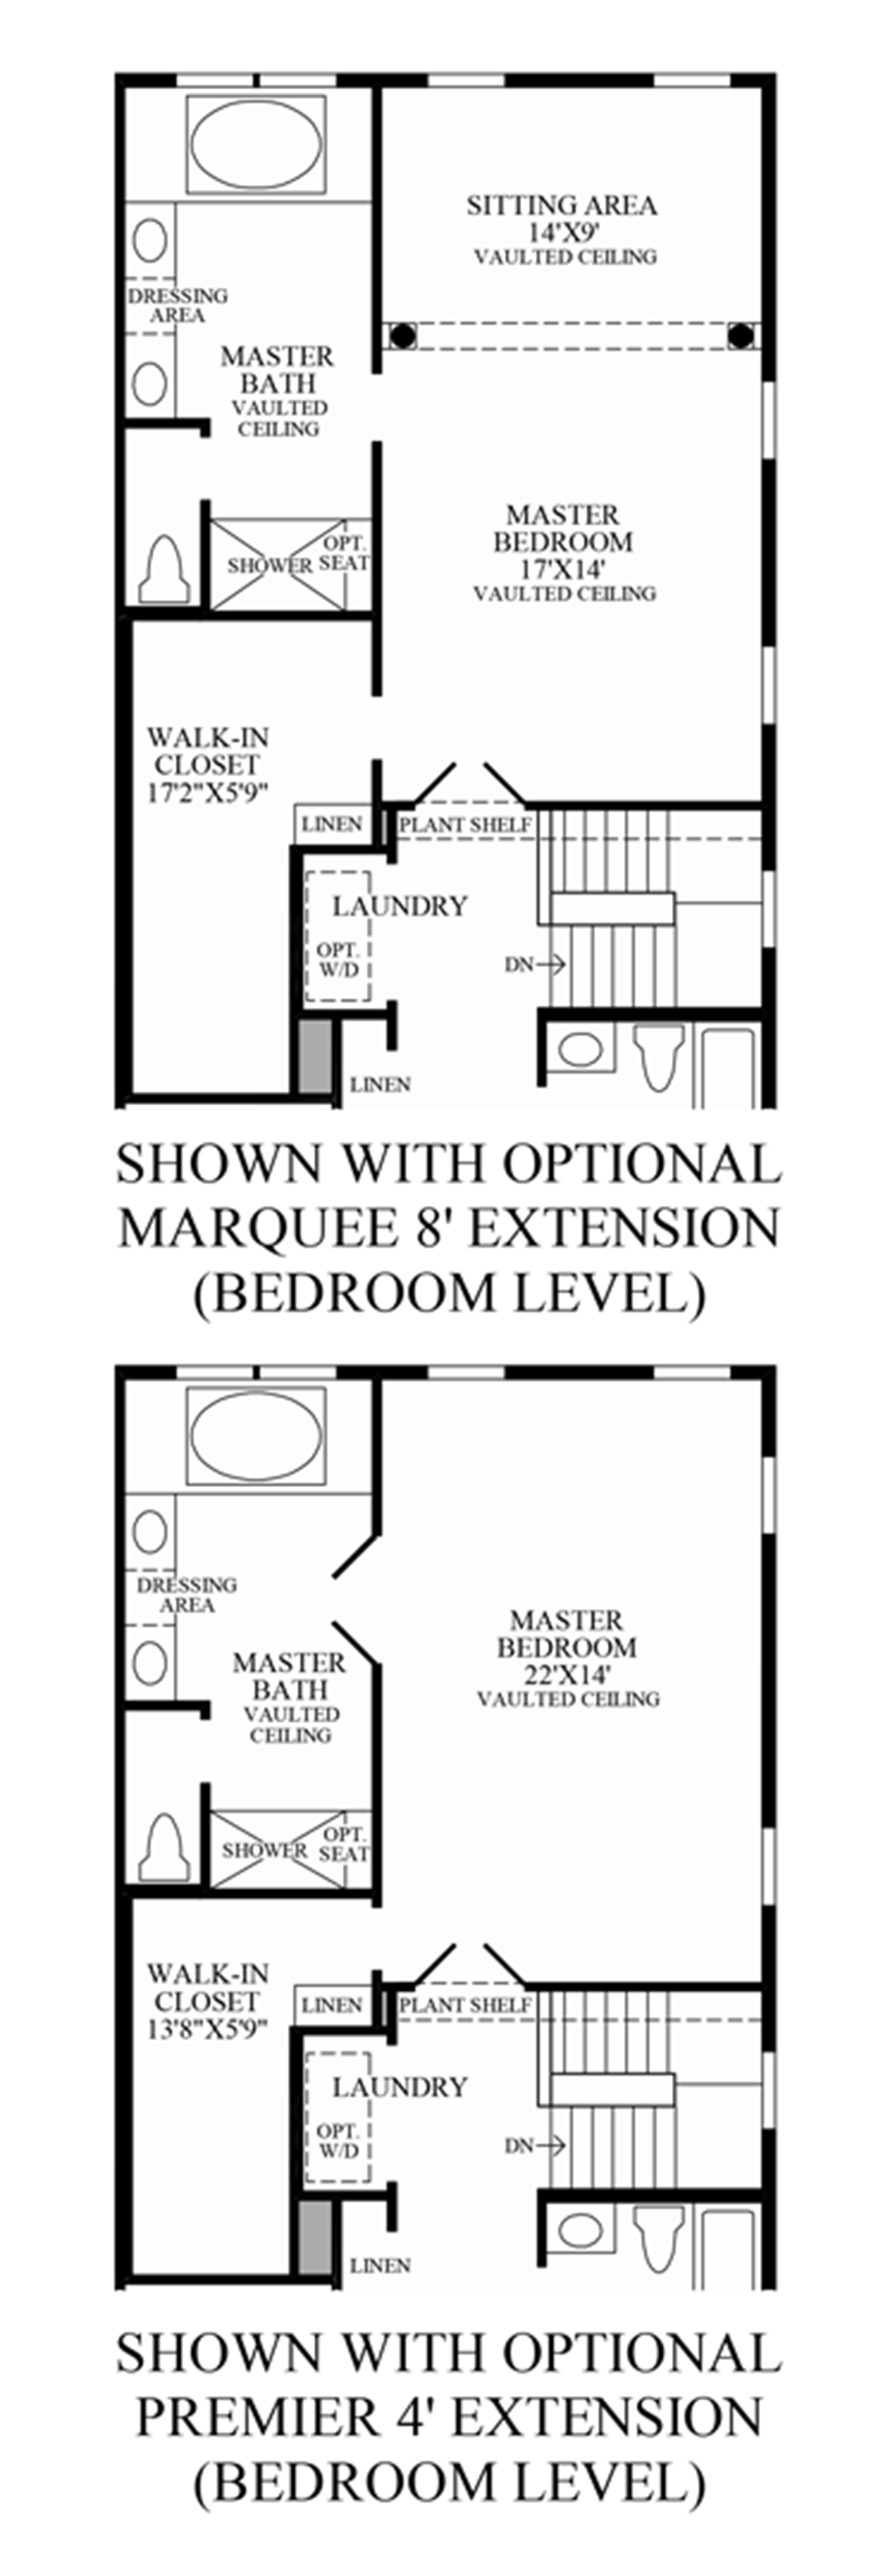 Optional Bedroom Level Extensions Floor Plan